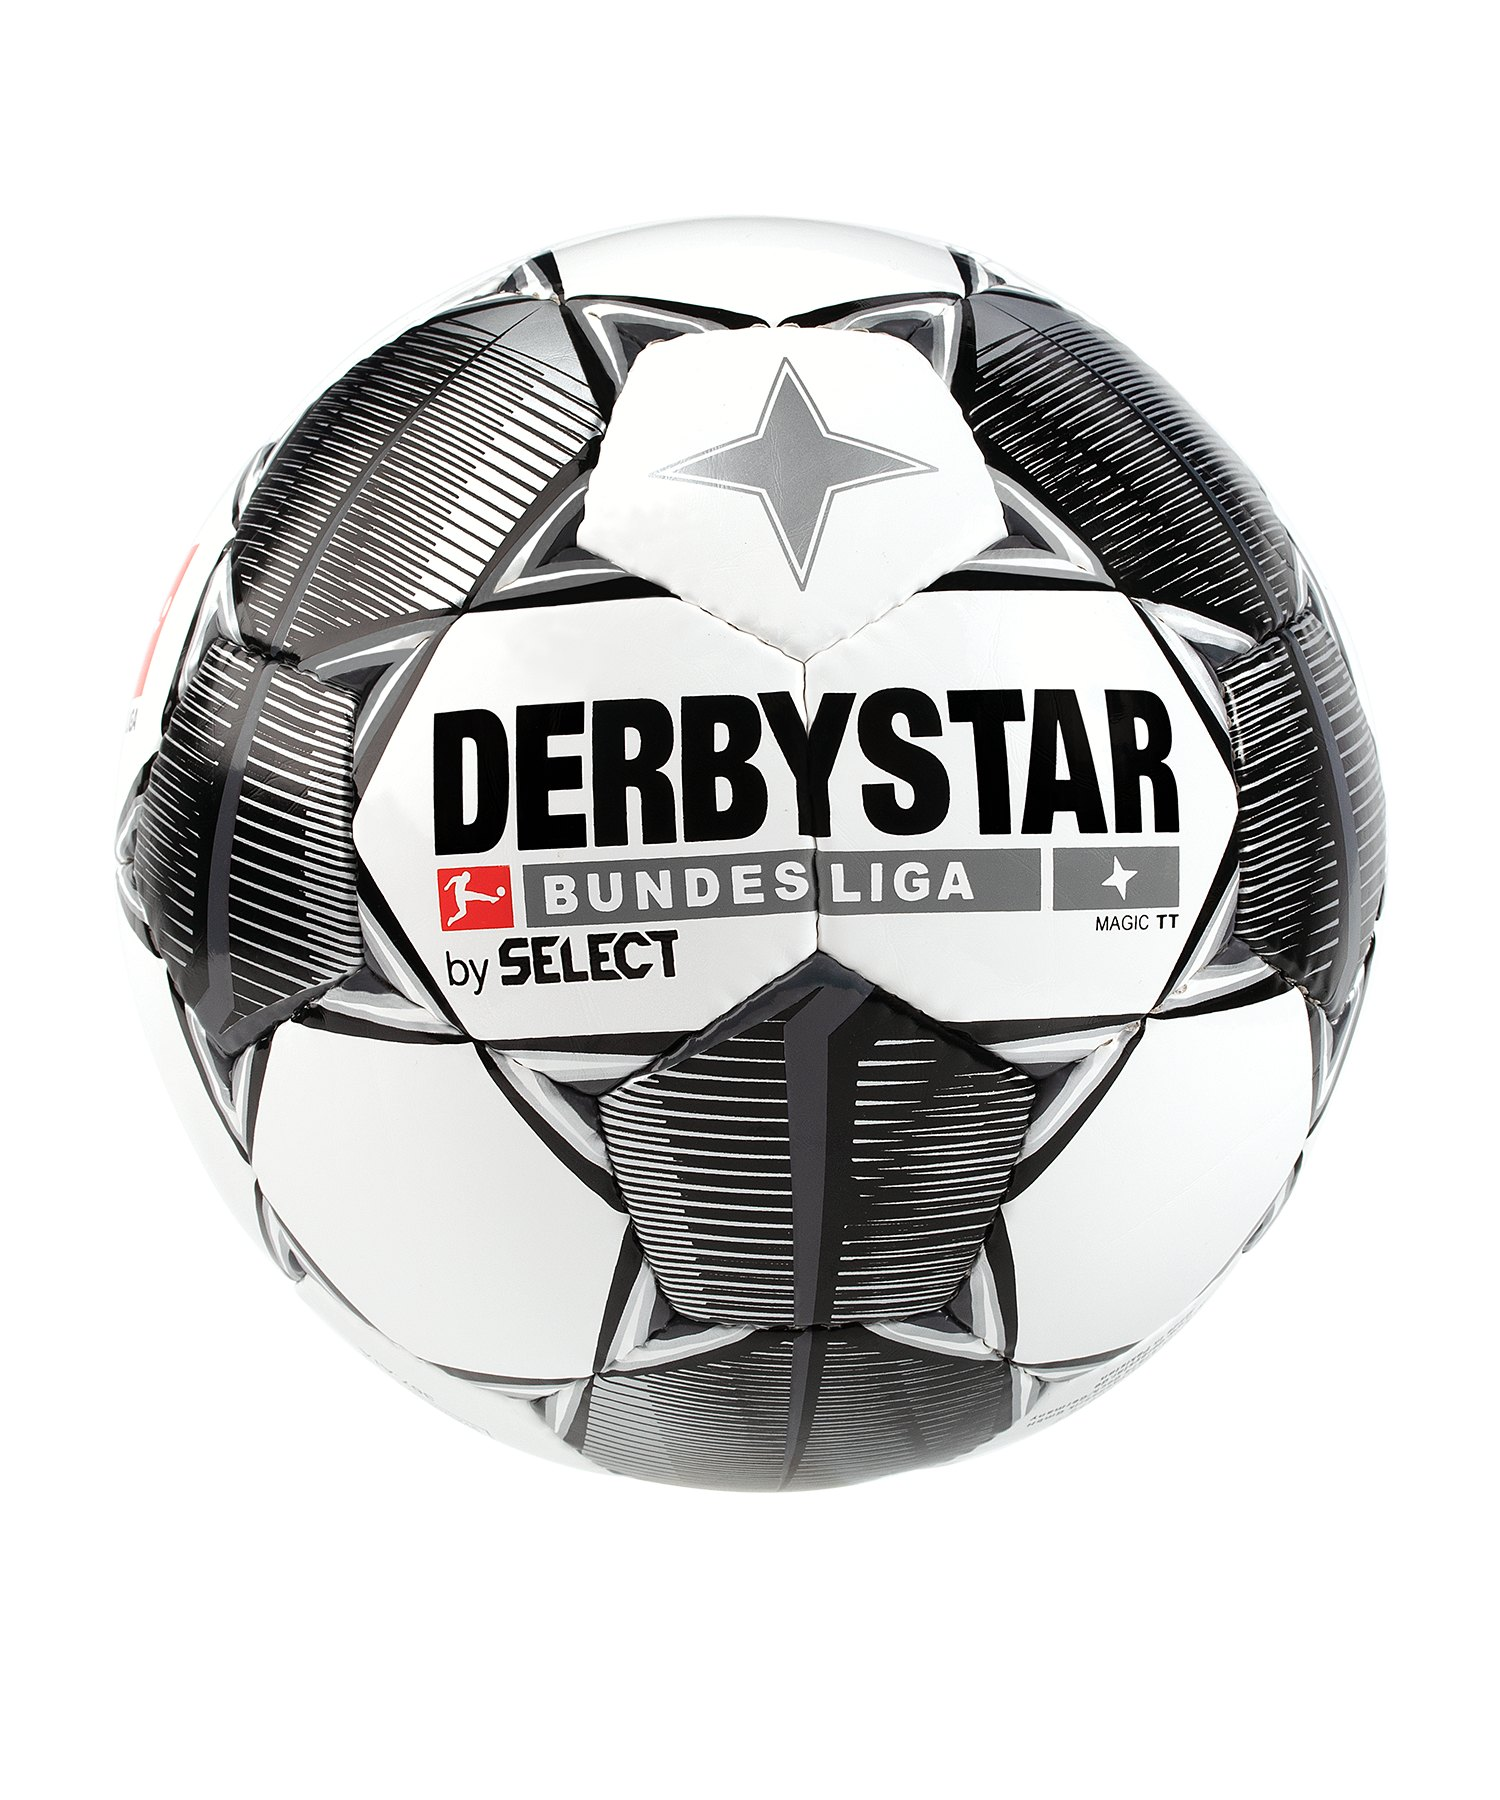 Derbystar Bundesliga Magic TT Trainingsball Weiss F19 - weiss